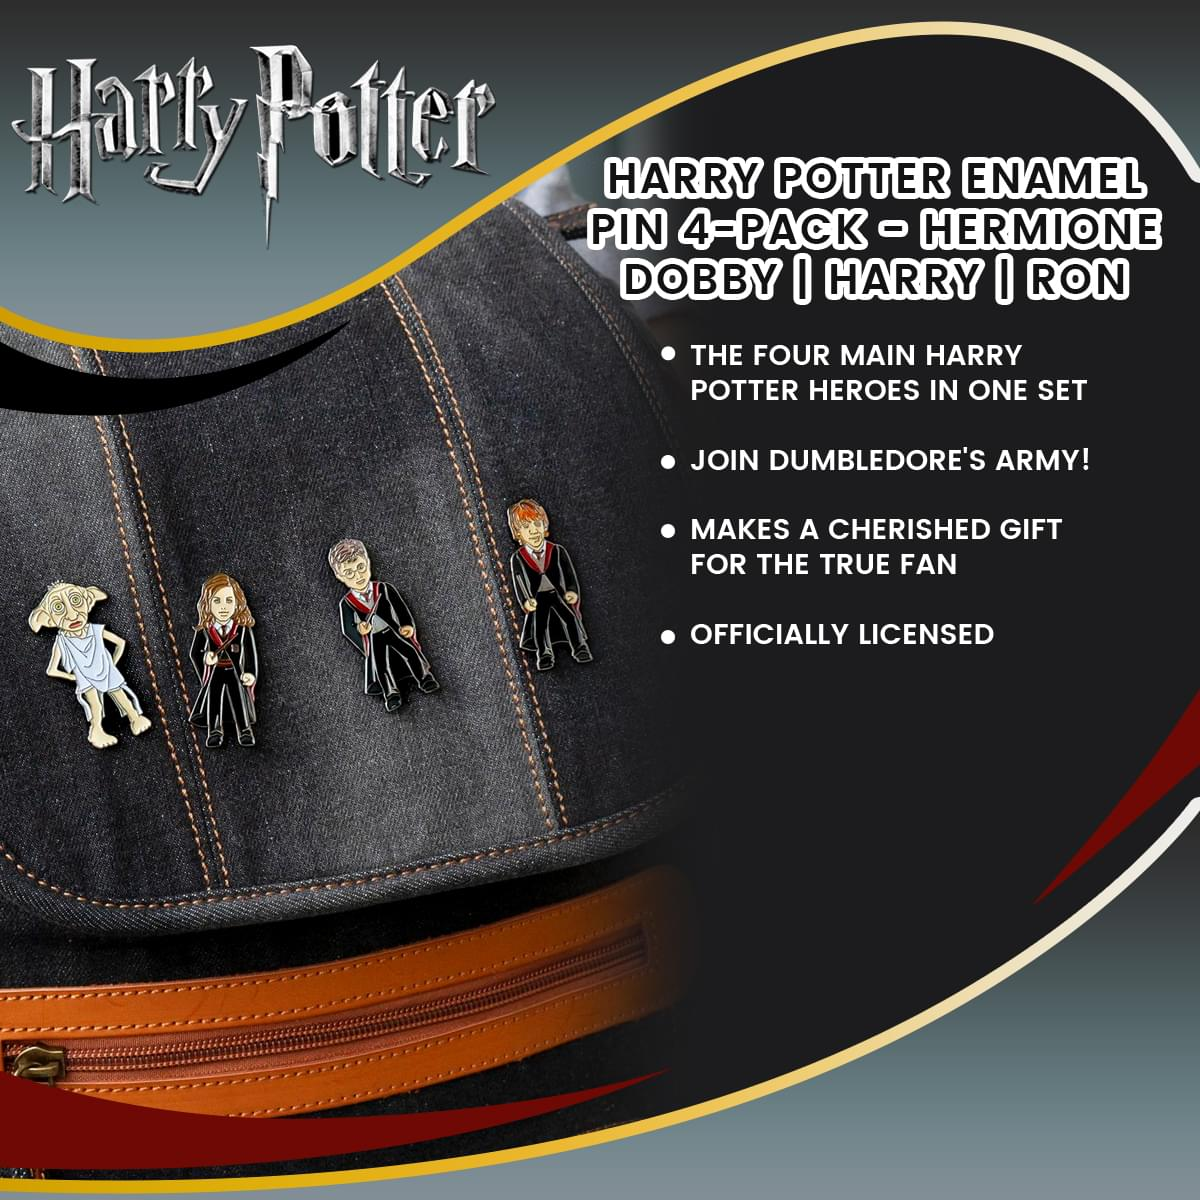 Harry Potter Enamel Pin 4-Pack - Hermione | Dobby | Harry | Ron